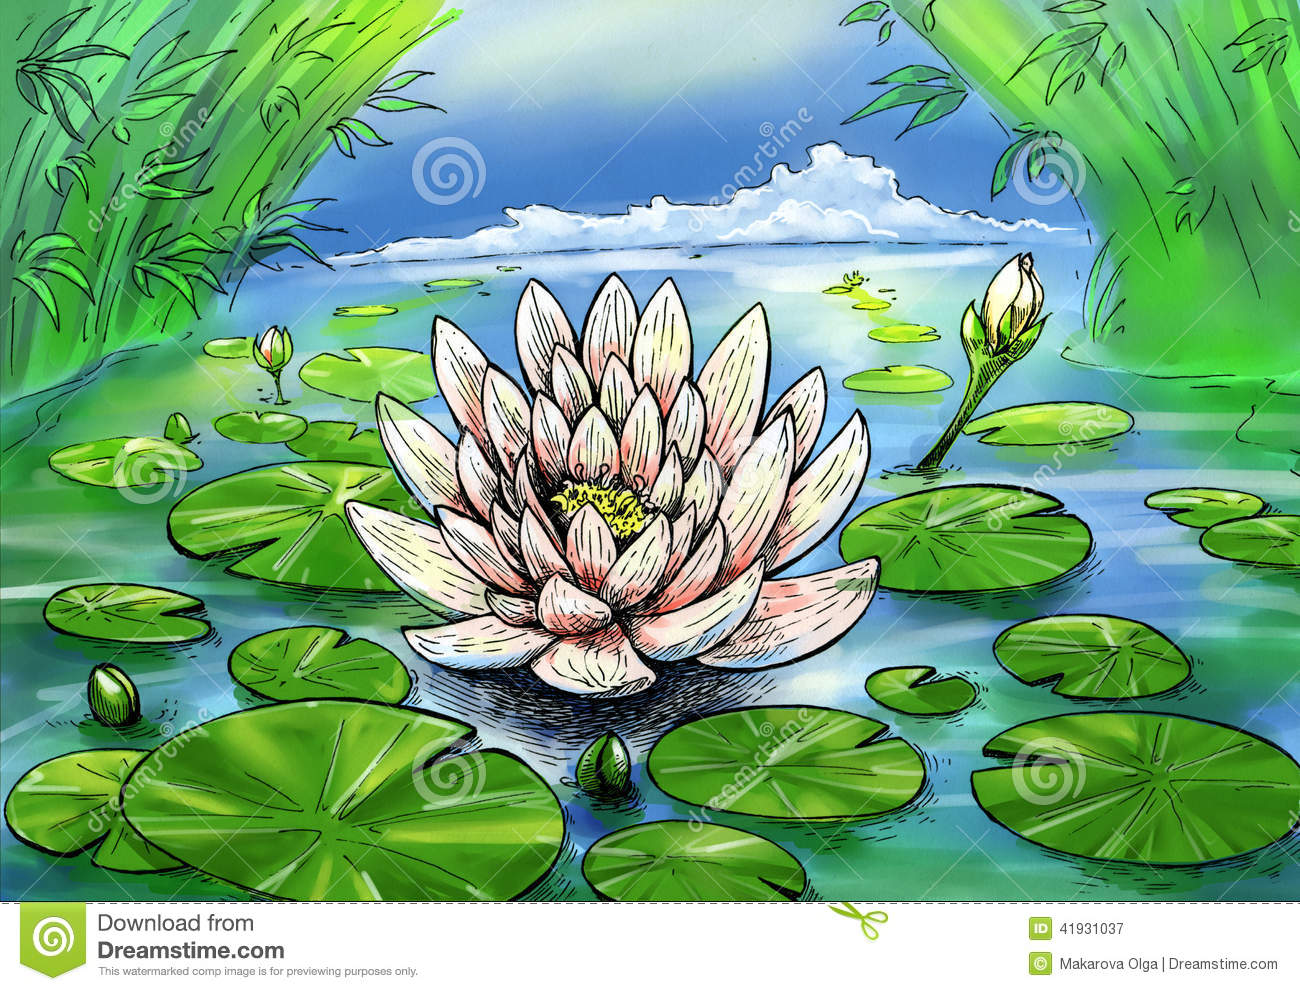 Drawn pond lily pond Lily clipart water pond Clipart